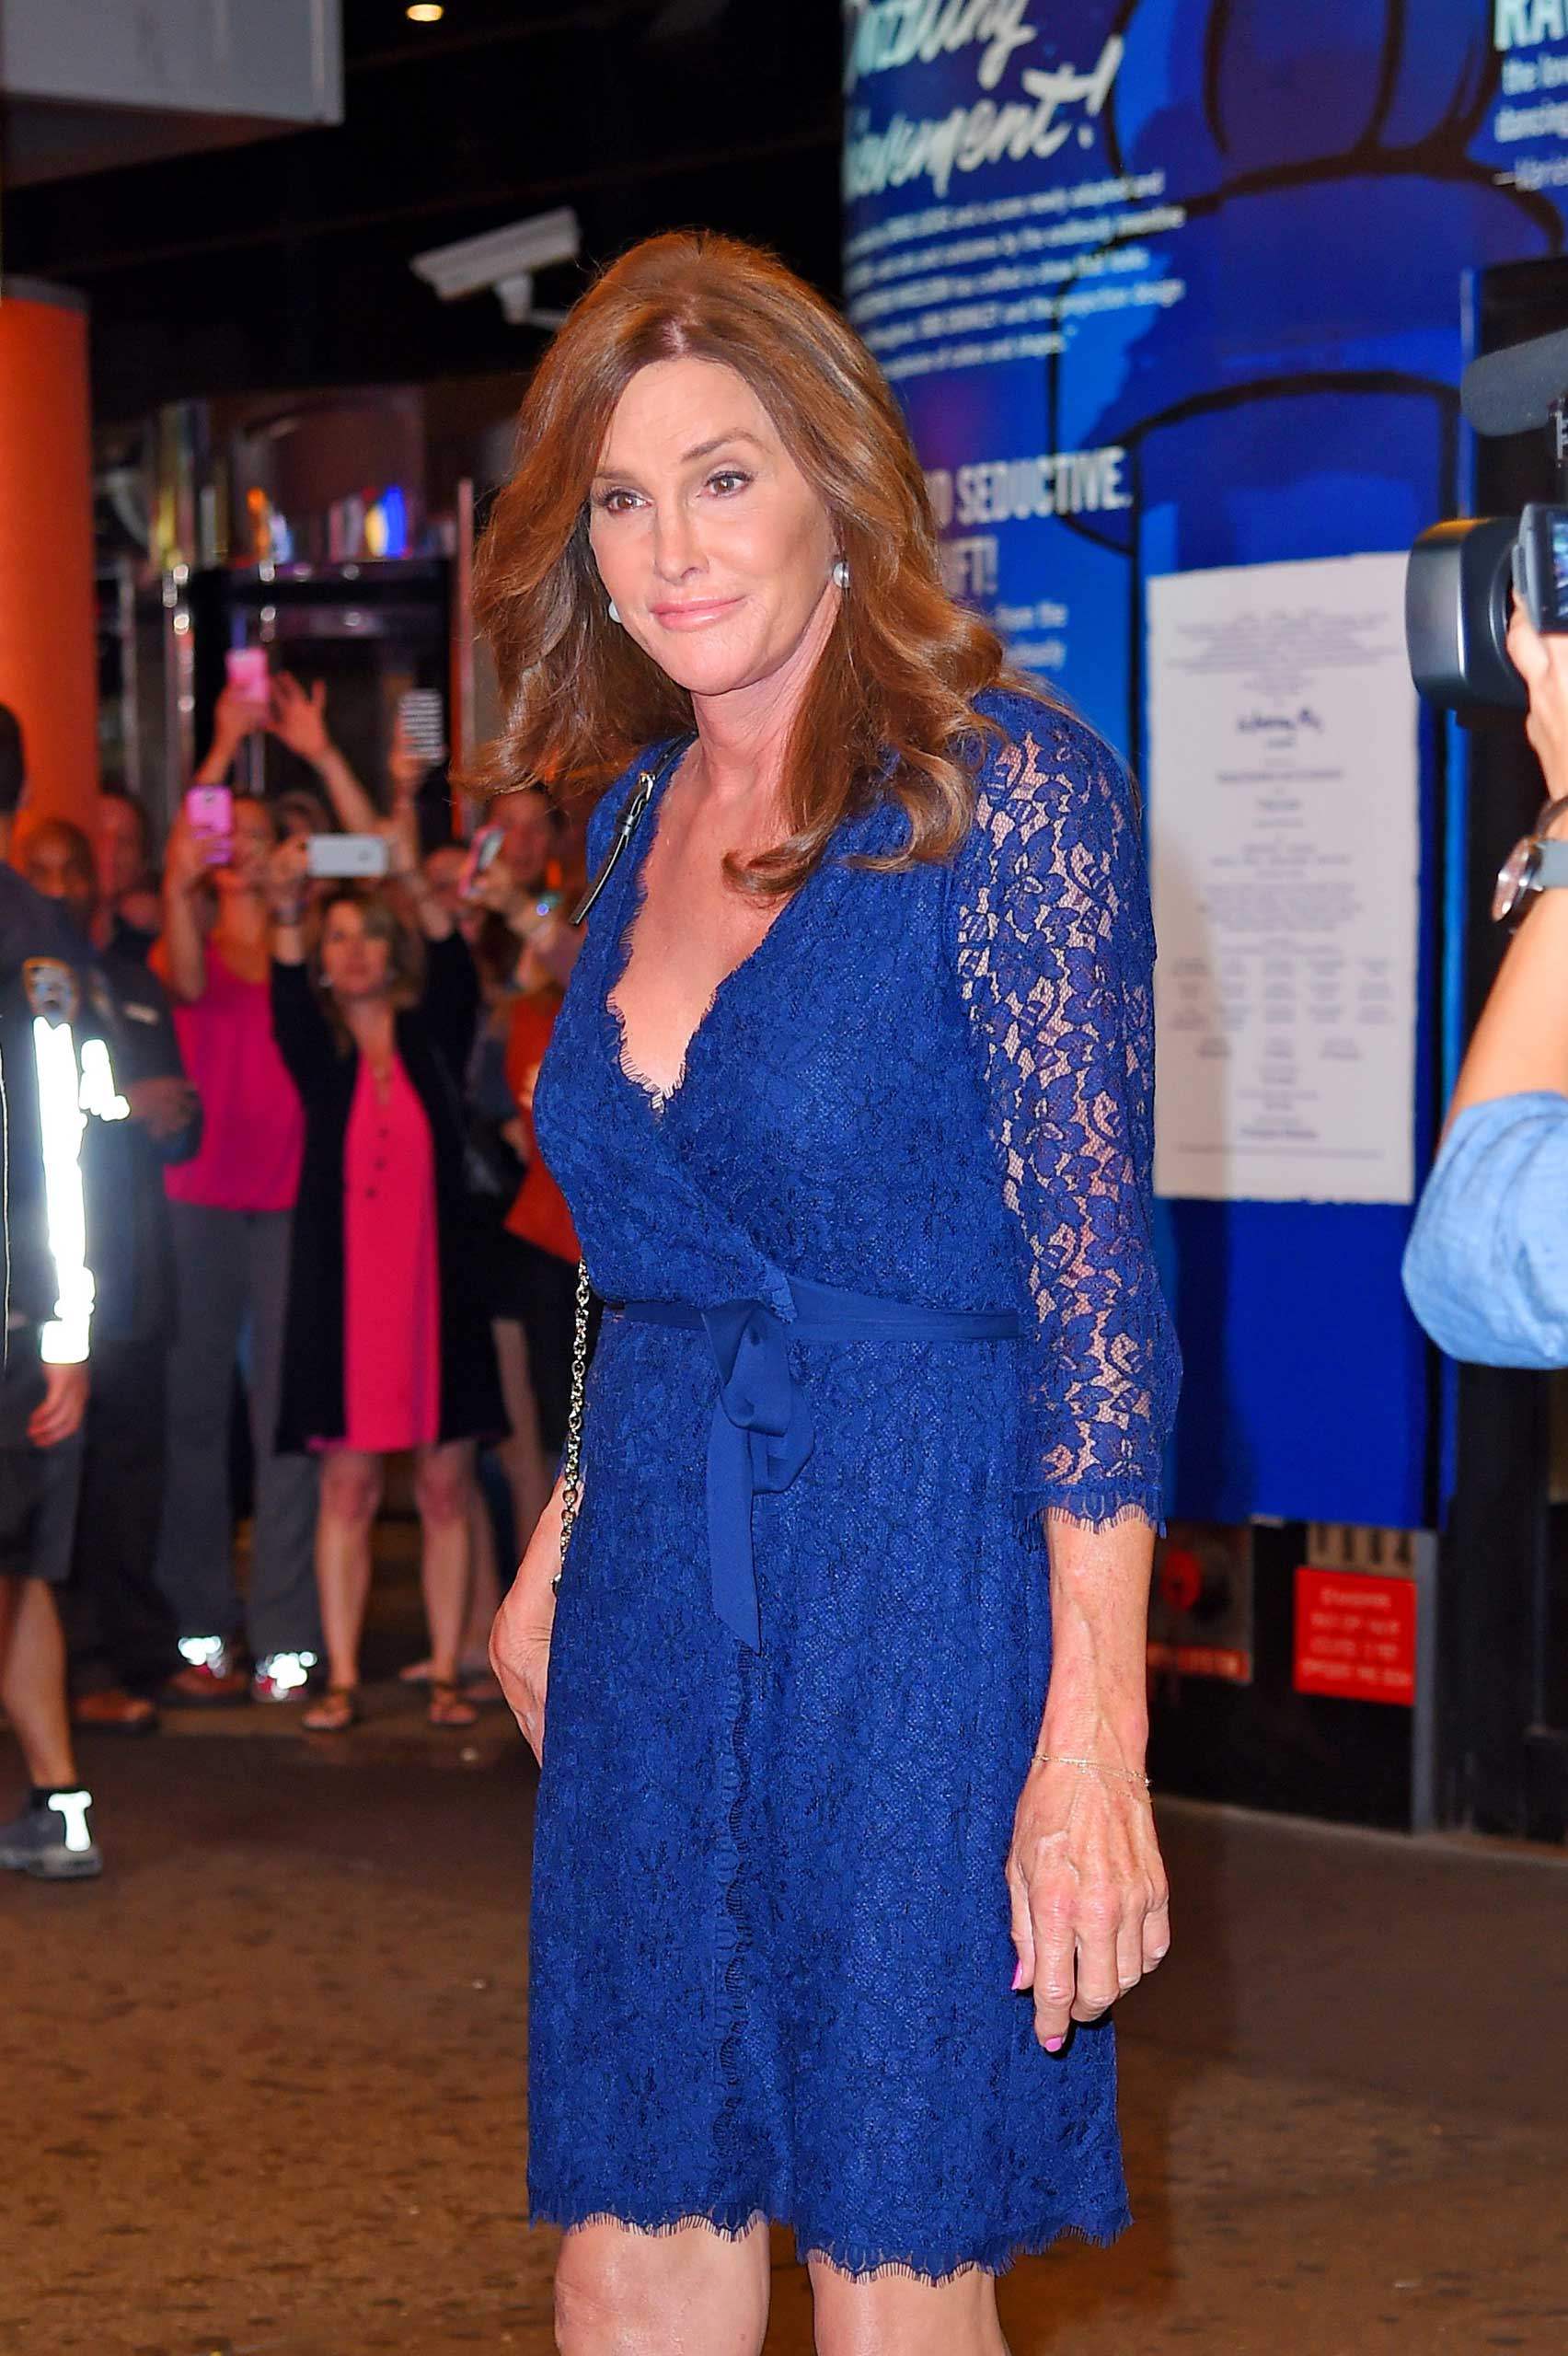 Caitlyn Jenner seen leaving 'An American in Paris' Broadway show in a bright blue lace dress on June 30, 2015 in New York.